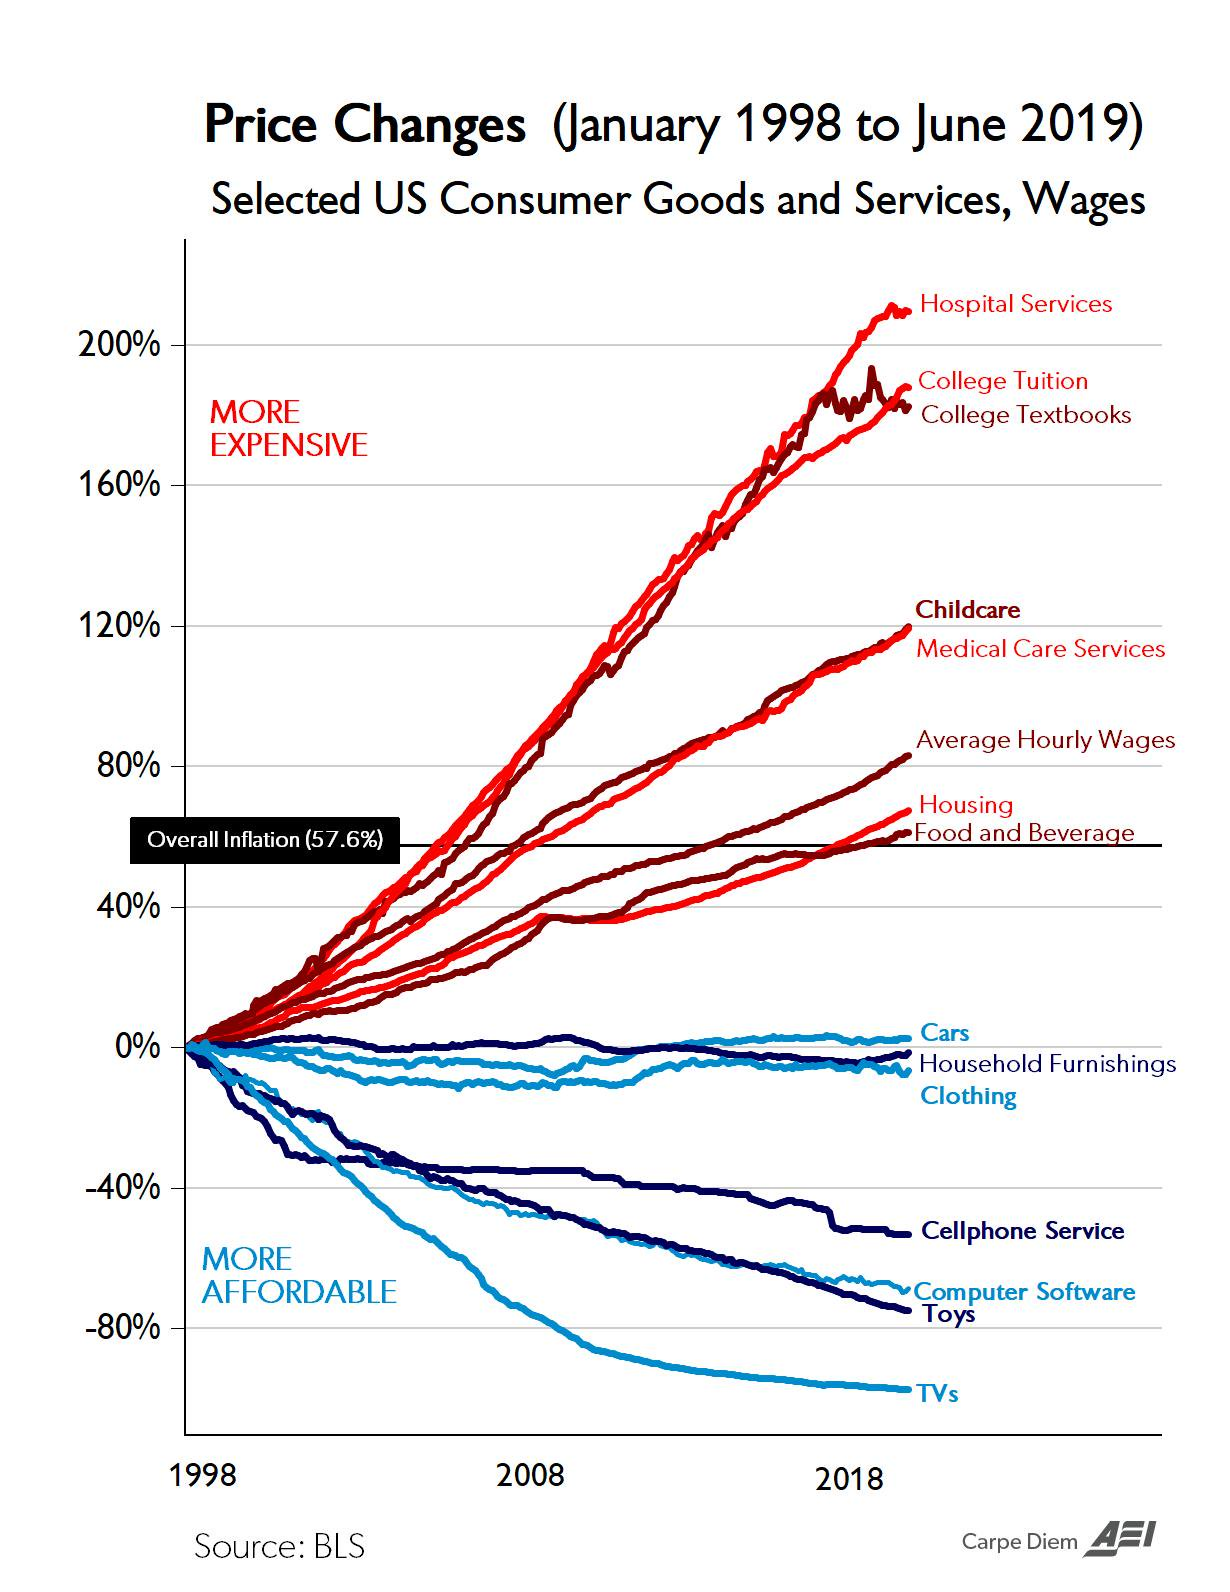 Illustration showing Price changes (January 1998 to June 2019) Selected US Consumer Goods and Services, Wages. Sourced from BLS by American Enterprise Institute.